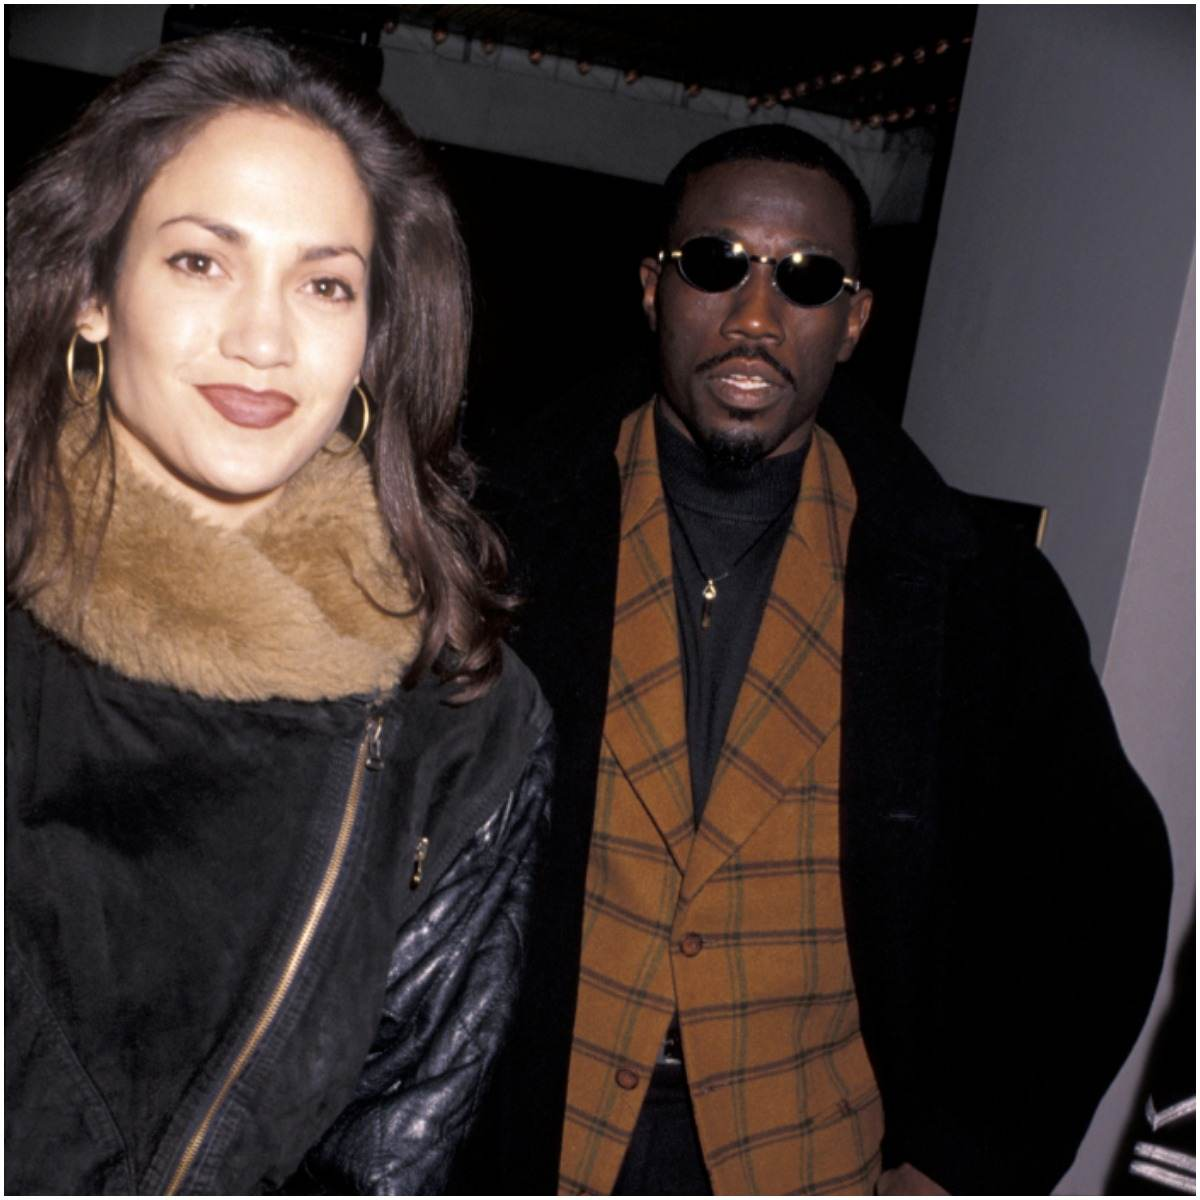 Wesley Snipes with his girlfriend Jennifer Lopez